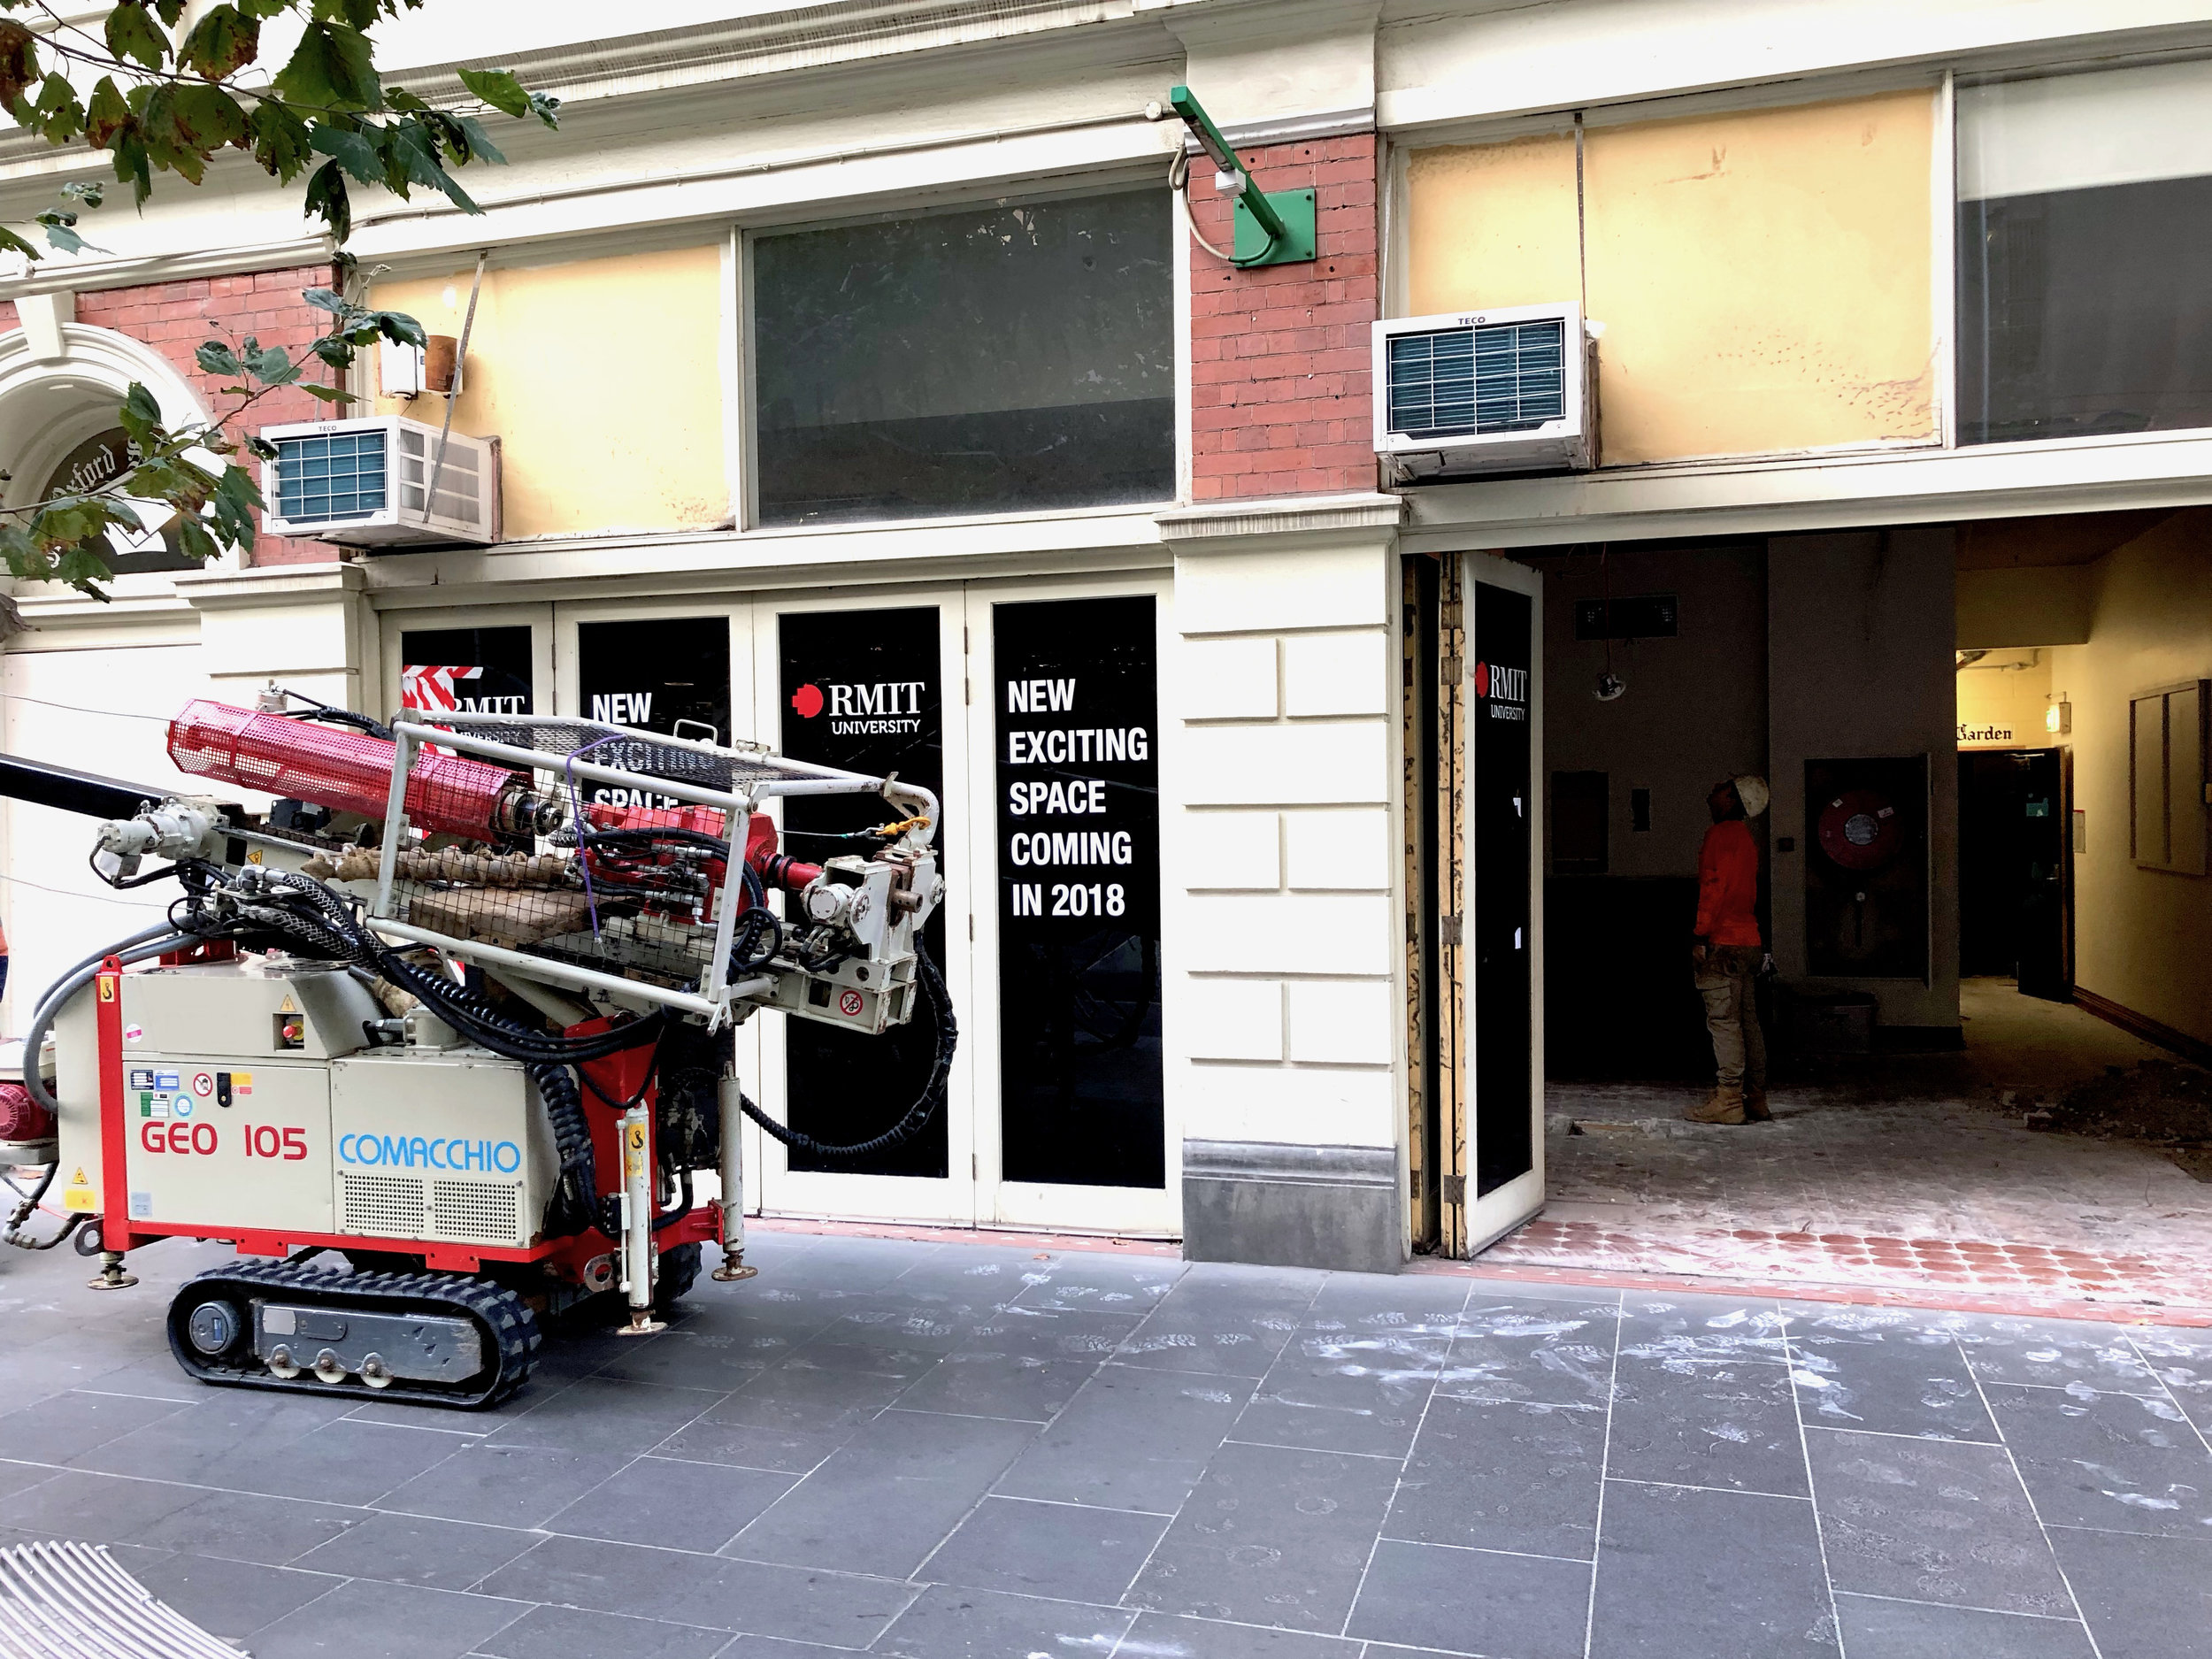 OXFORD SCHOLAR HOTEL (RMIT) - Rock Solid Earth carried out the geotechnical investigation within the Oxford Scholar Hotel (RMIT). This include mobilising a tight access drilling rig via Swanston St and drilling through old fill/rubble to provide recommendations on the new refurbishment.